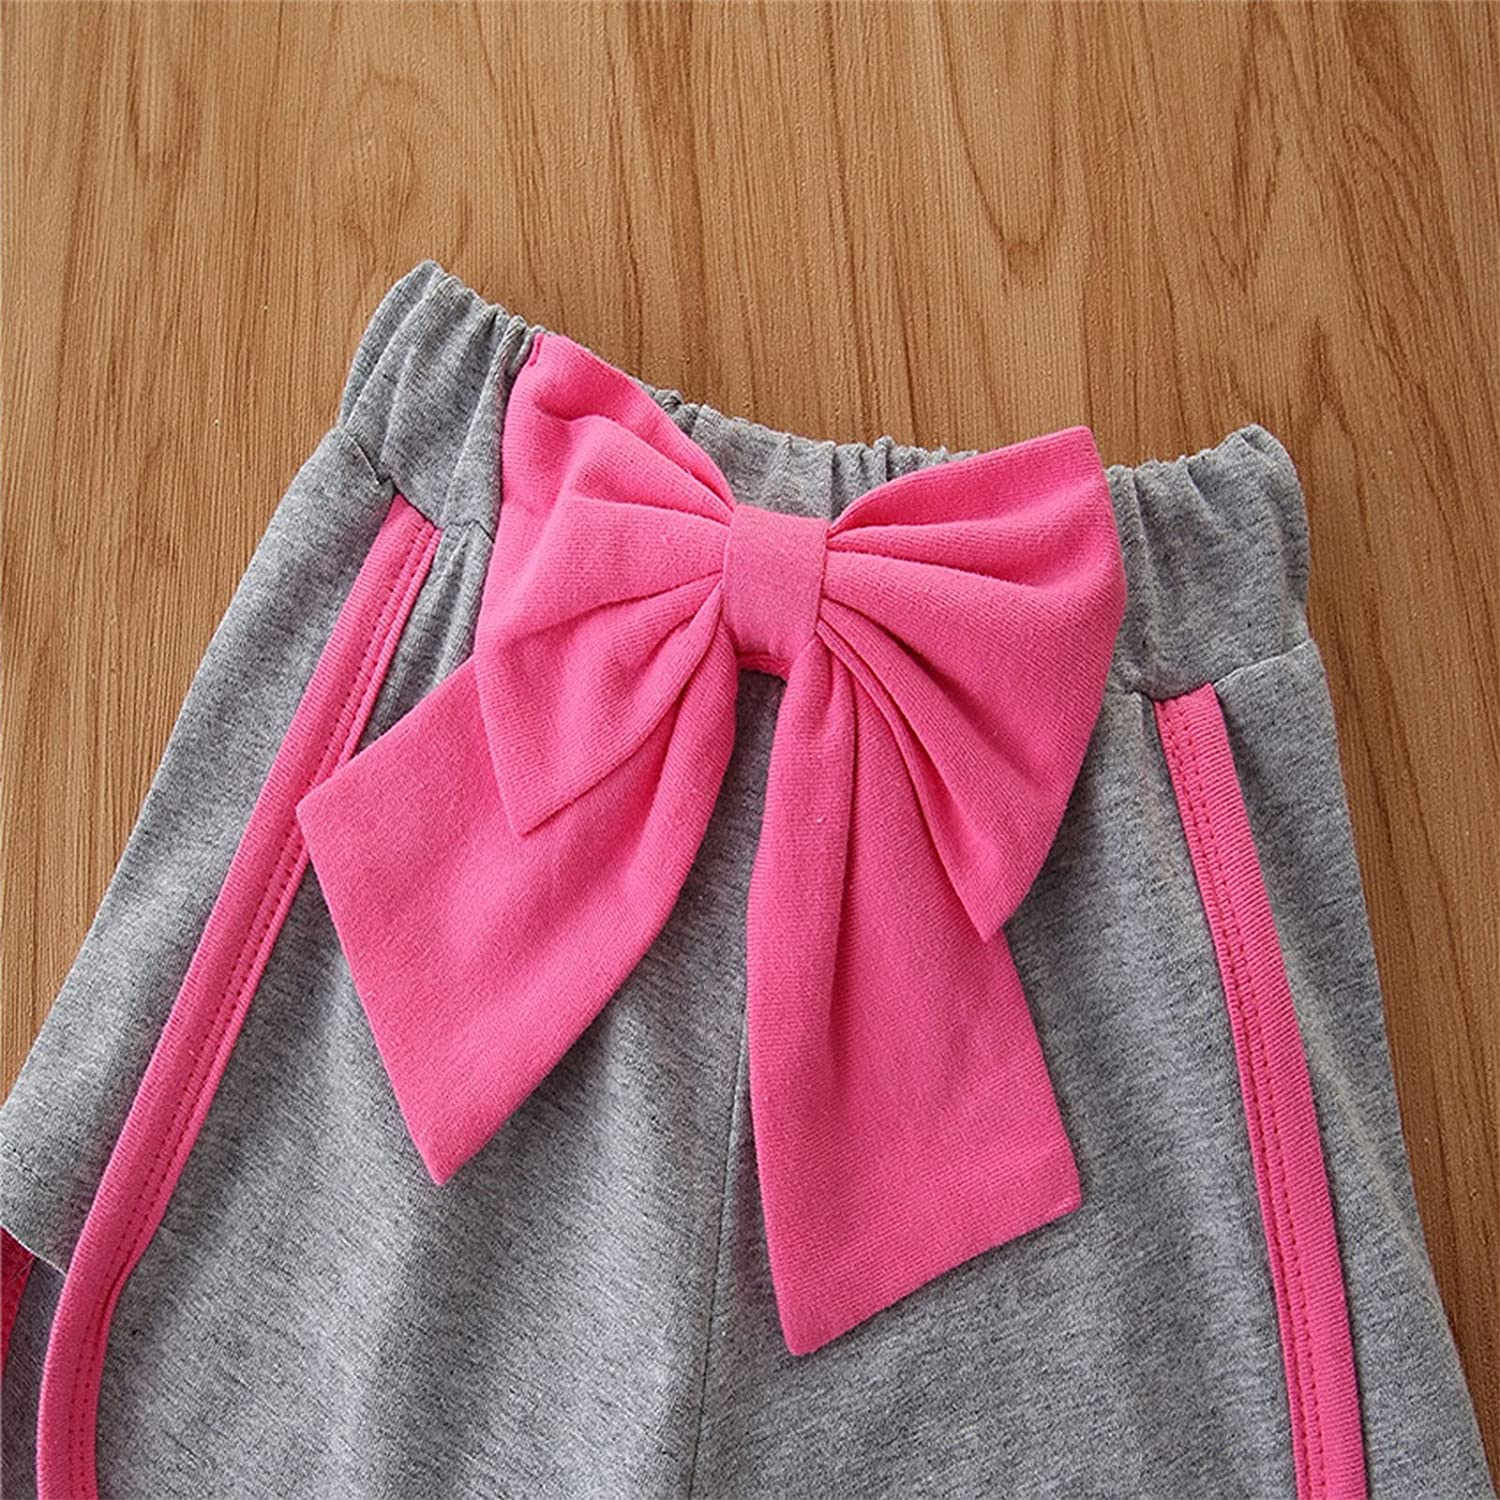 Specialtyliu Toddler Baby Girl Clothes Vest Tank Top Sleeveless Short Set Sumumer Outfit 2Pcs